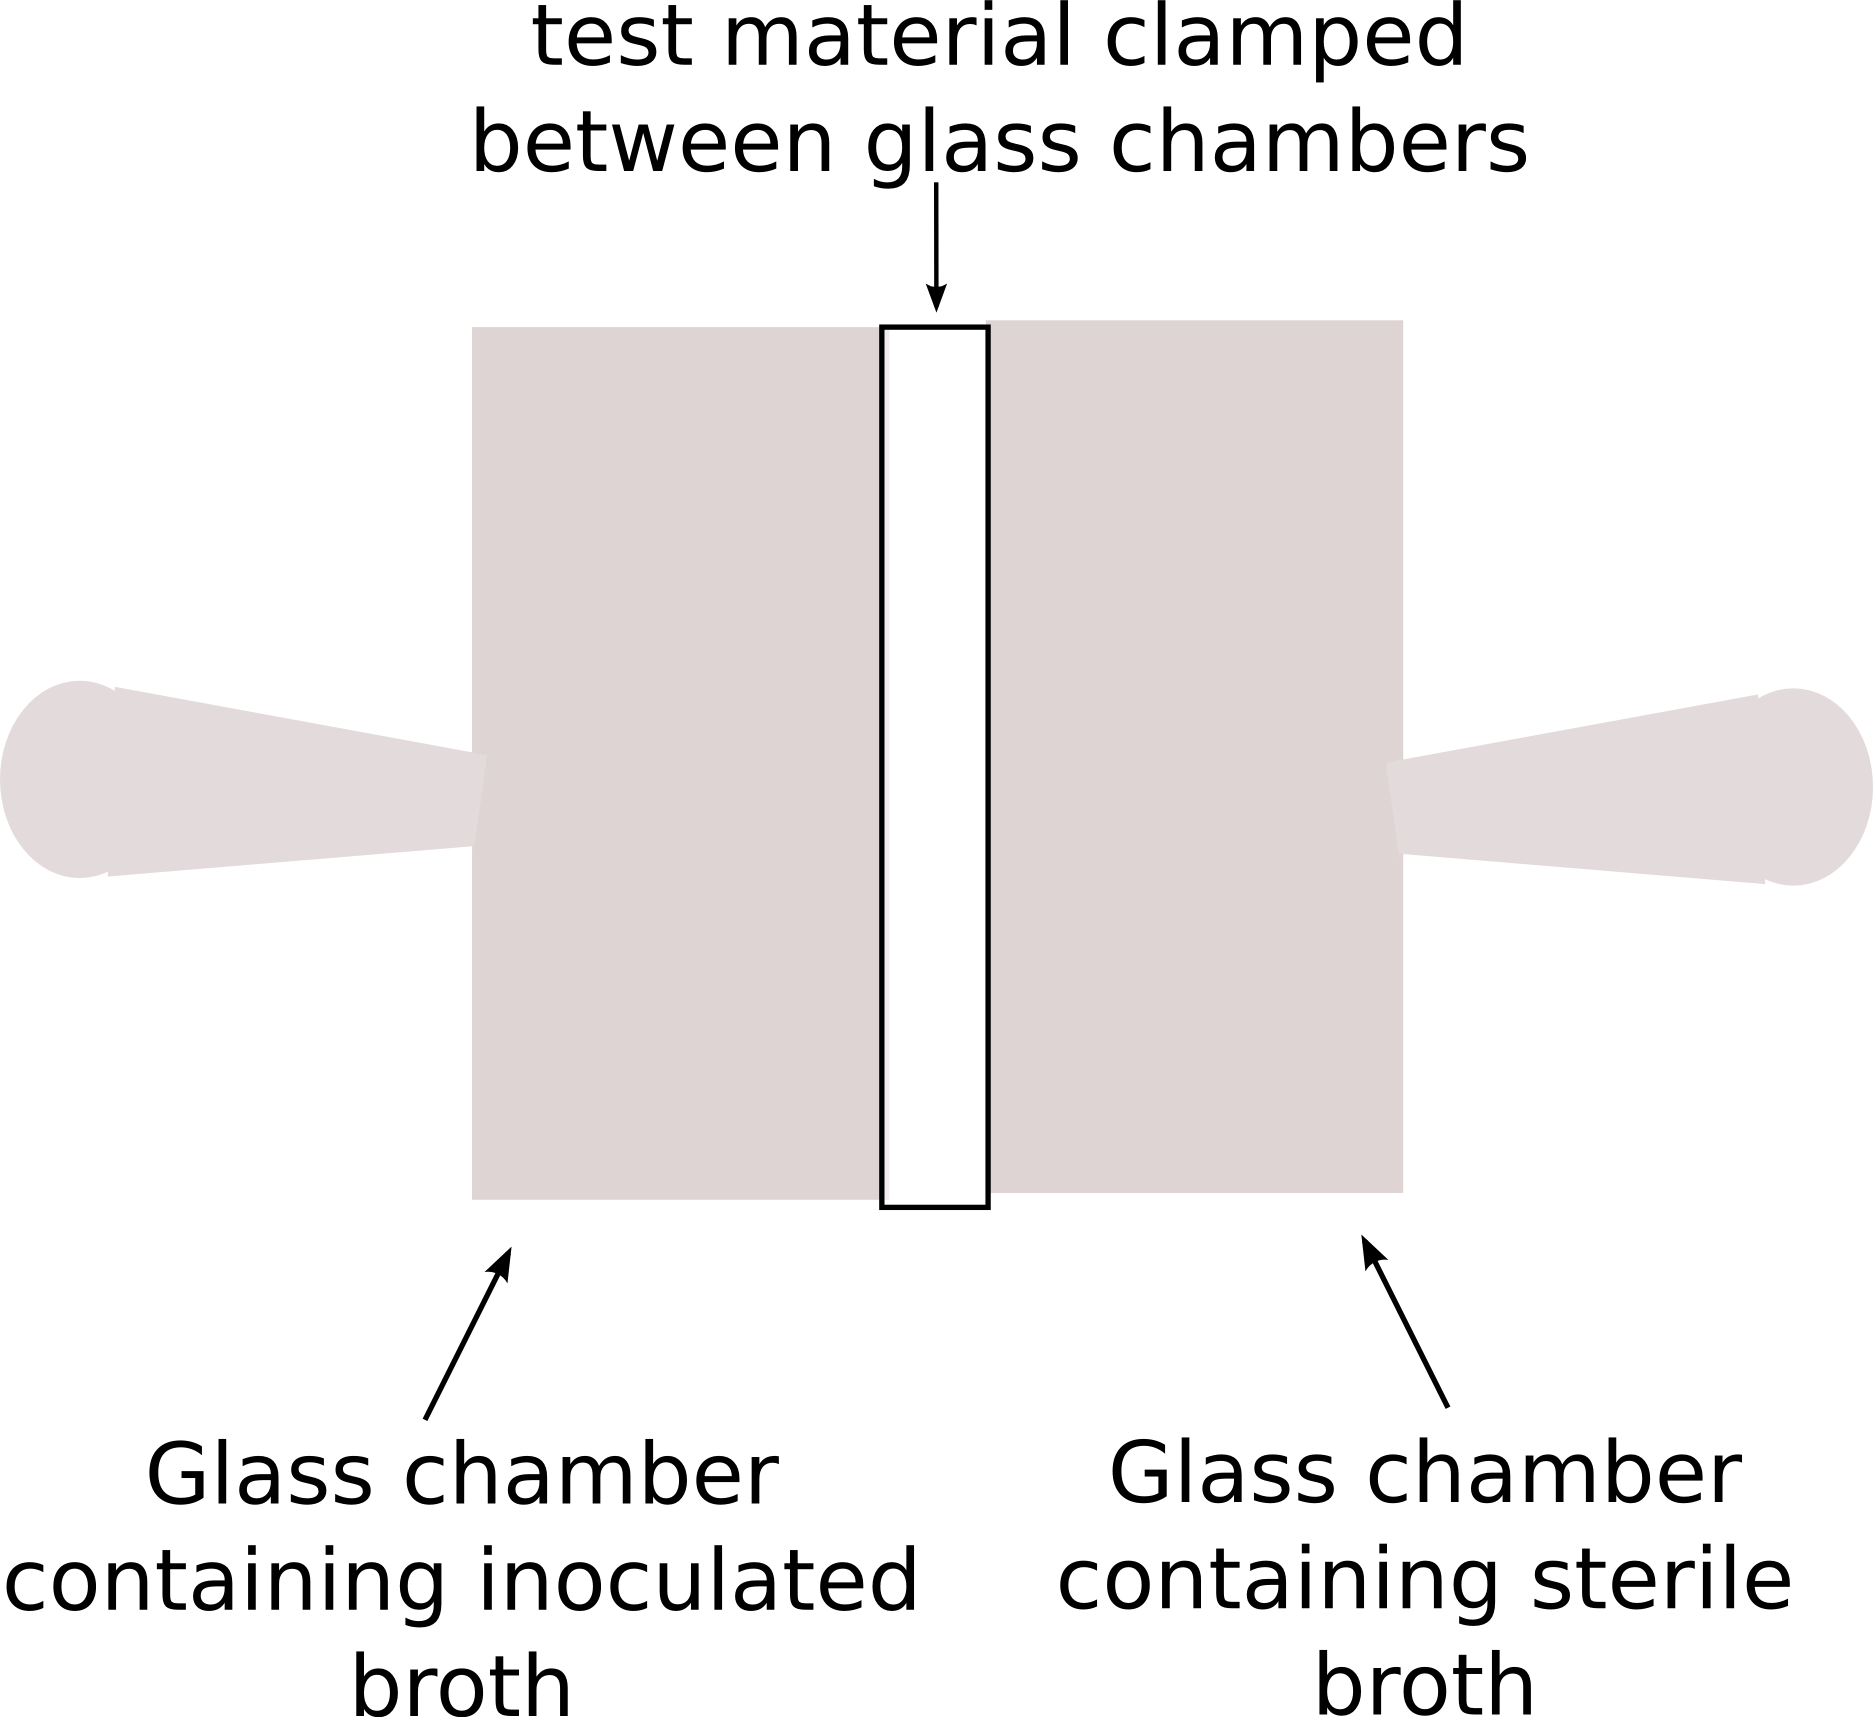 schematic of the test chamber